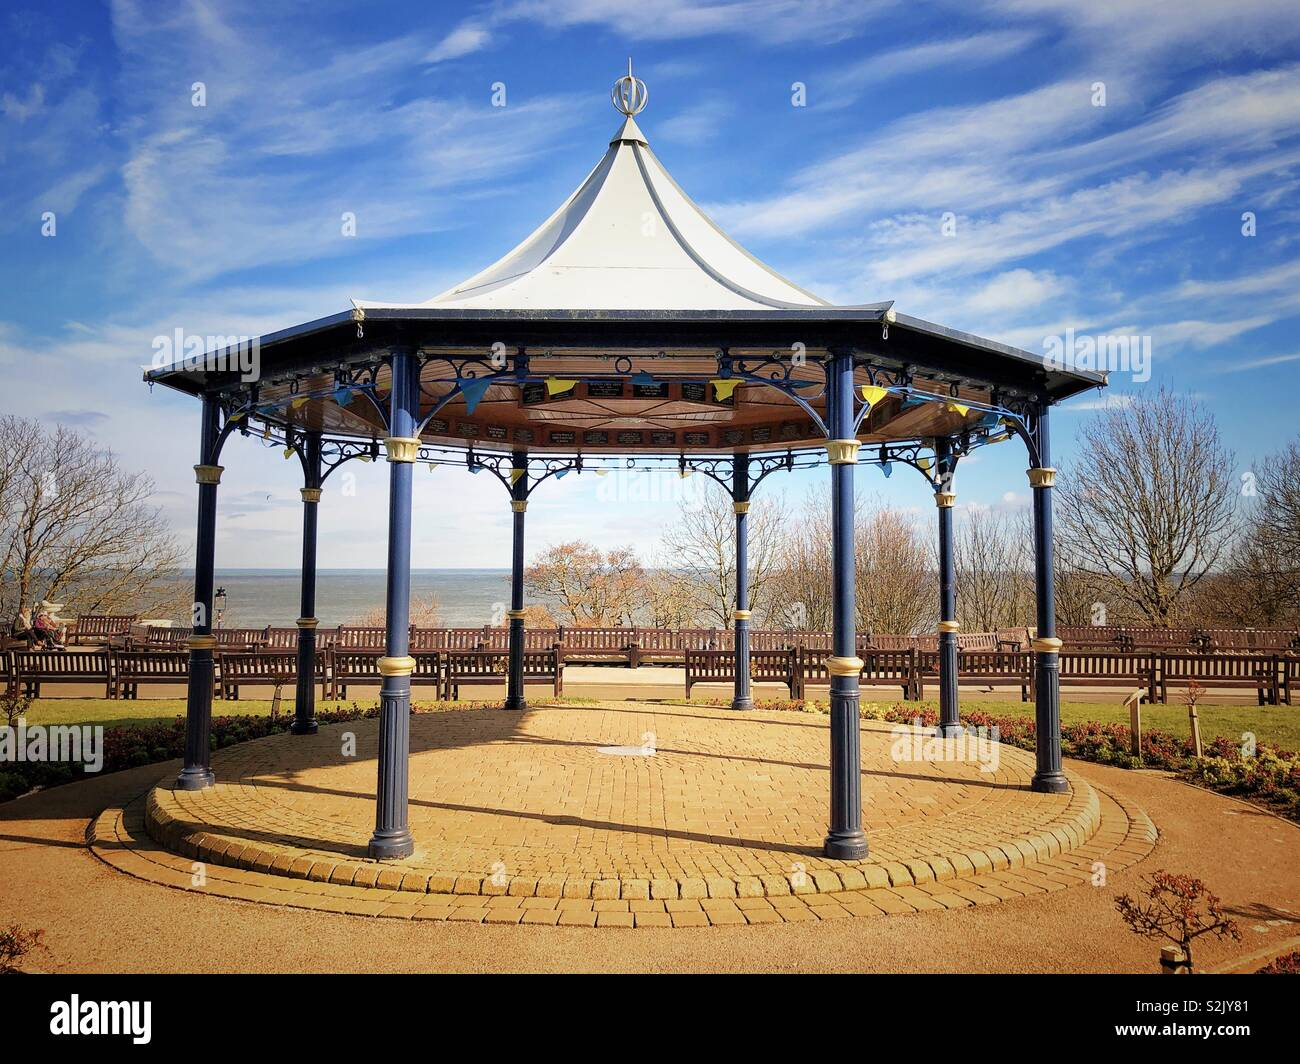 The bandstand, Crescent Gardens, Filey, UK - Stock Image